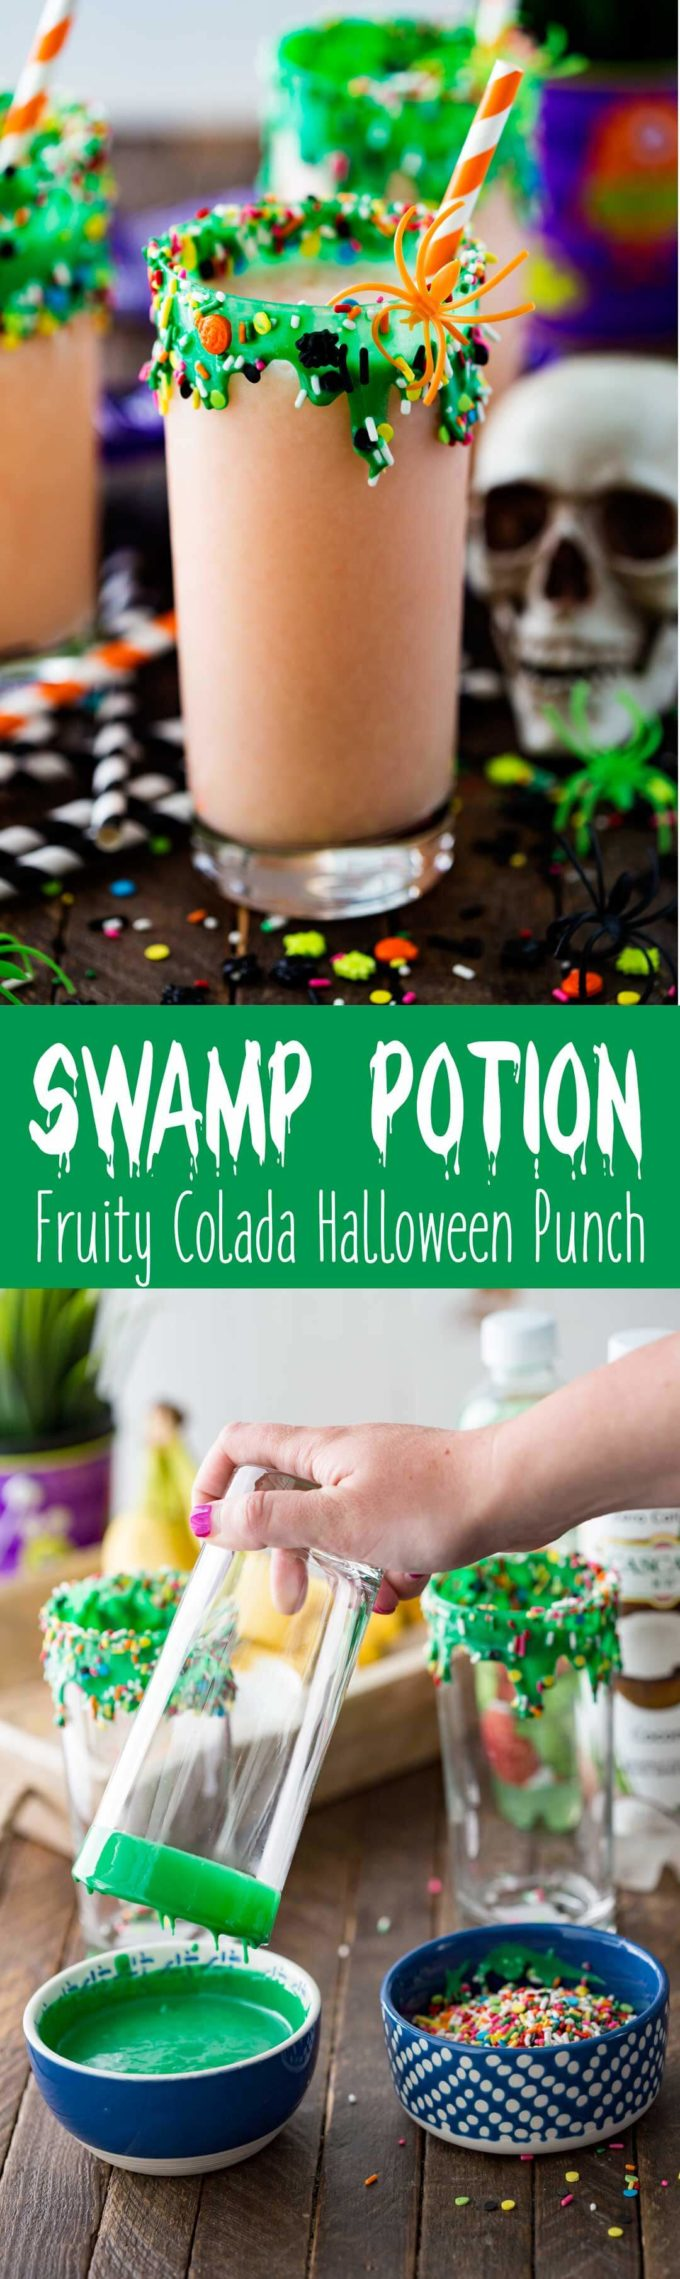 Swamp potion is a halloween punch you will love!